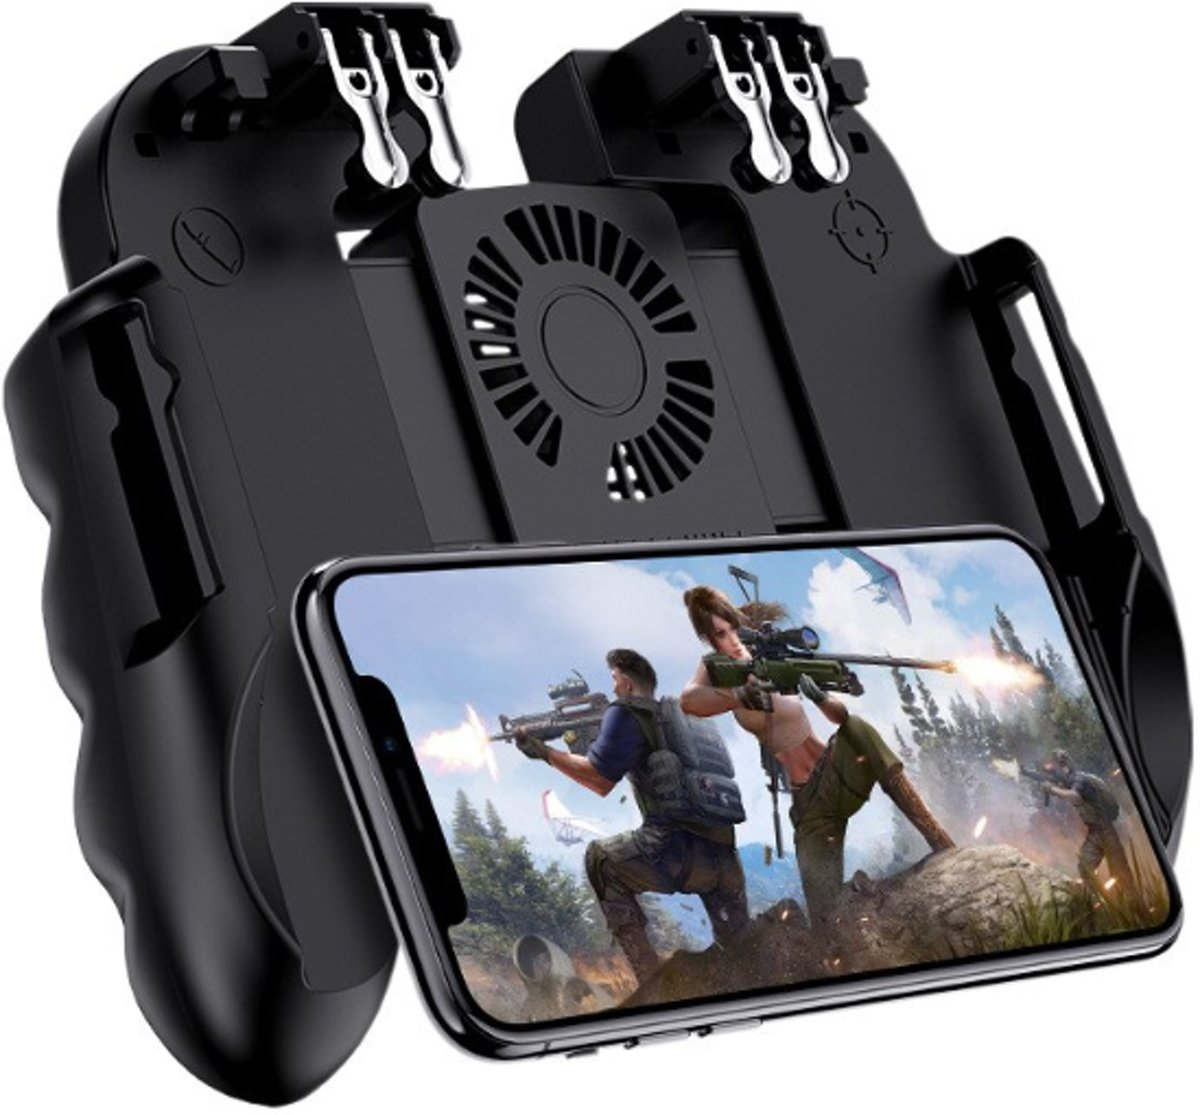 DrPhone GX5 GameController – Joystick – Trigger – IOS – Android – Ventilatie – game accessoires – Smarthphone – Fortnite – PUBG – Call Of Duty – Trigger Buttons